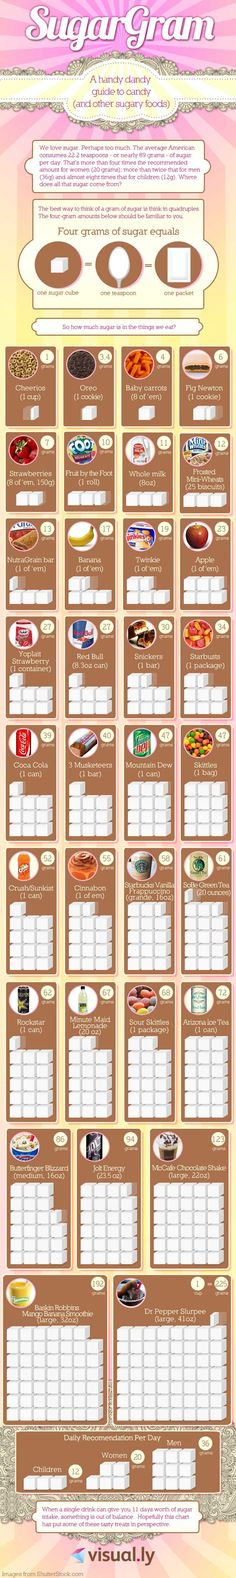 Your Guide to Sugar [infographic] | Daily Infographic